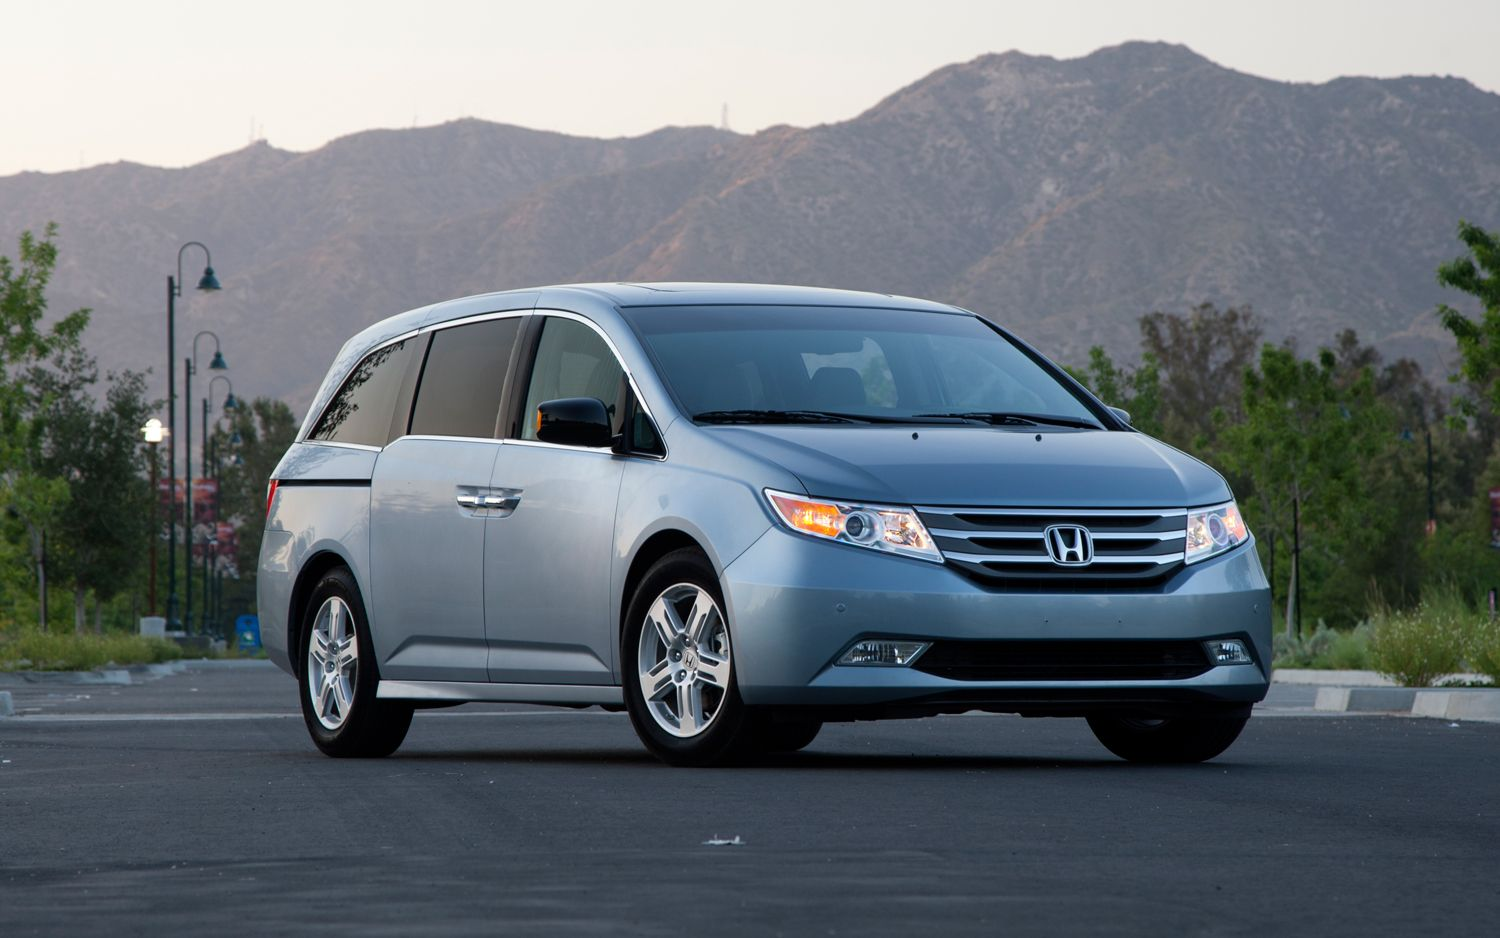 honda odyssey 2013 utilidad comodidad y excelente precio lista de carros. Black Bedroom Furniture Sets. Home Design Ideas